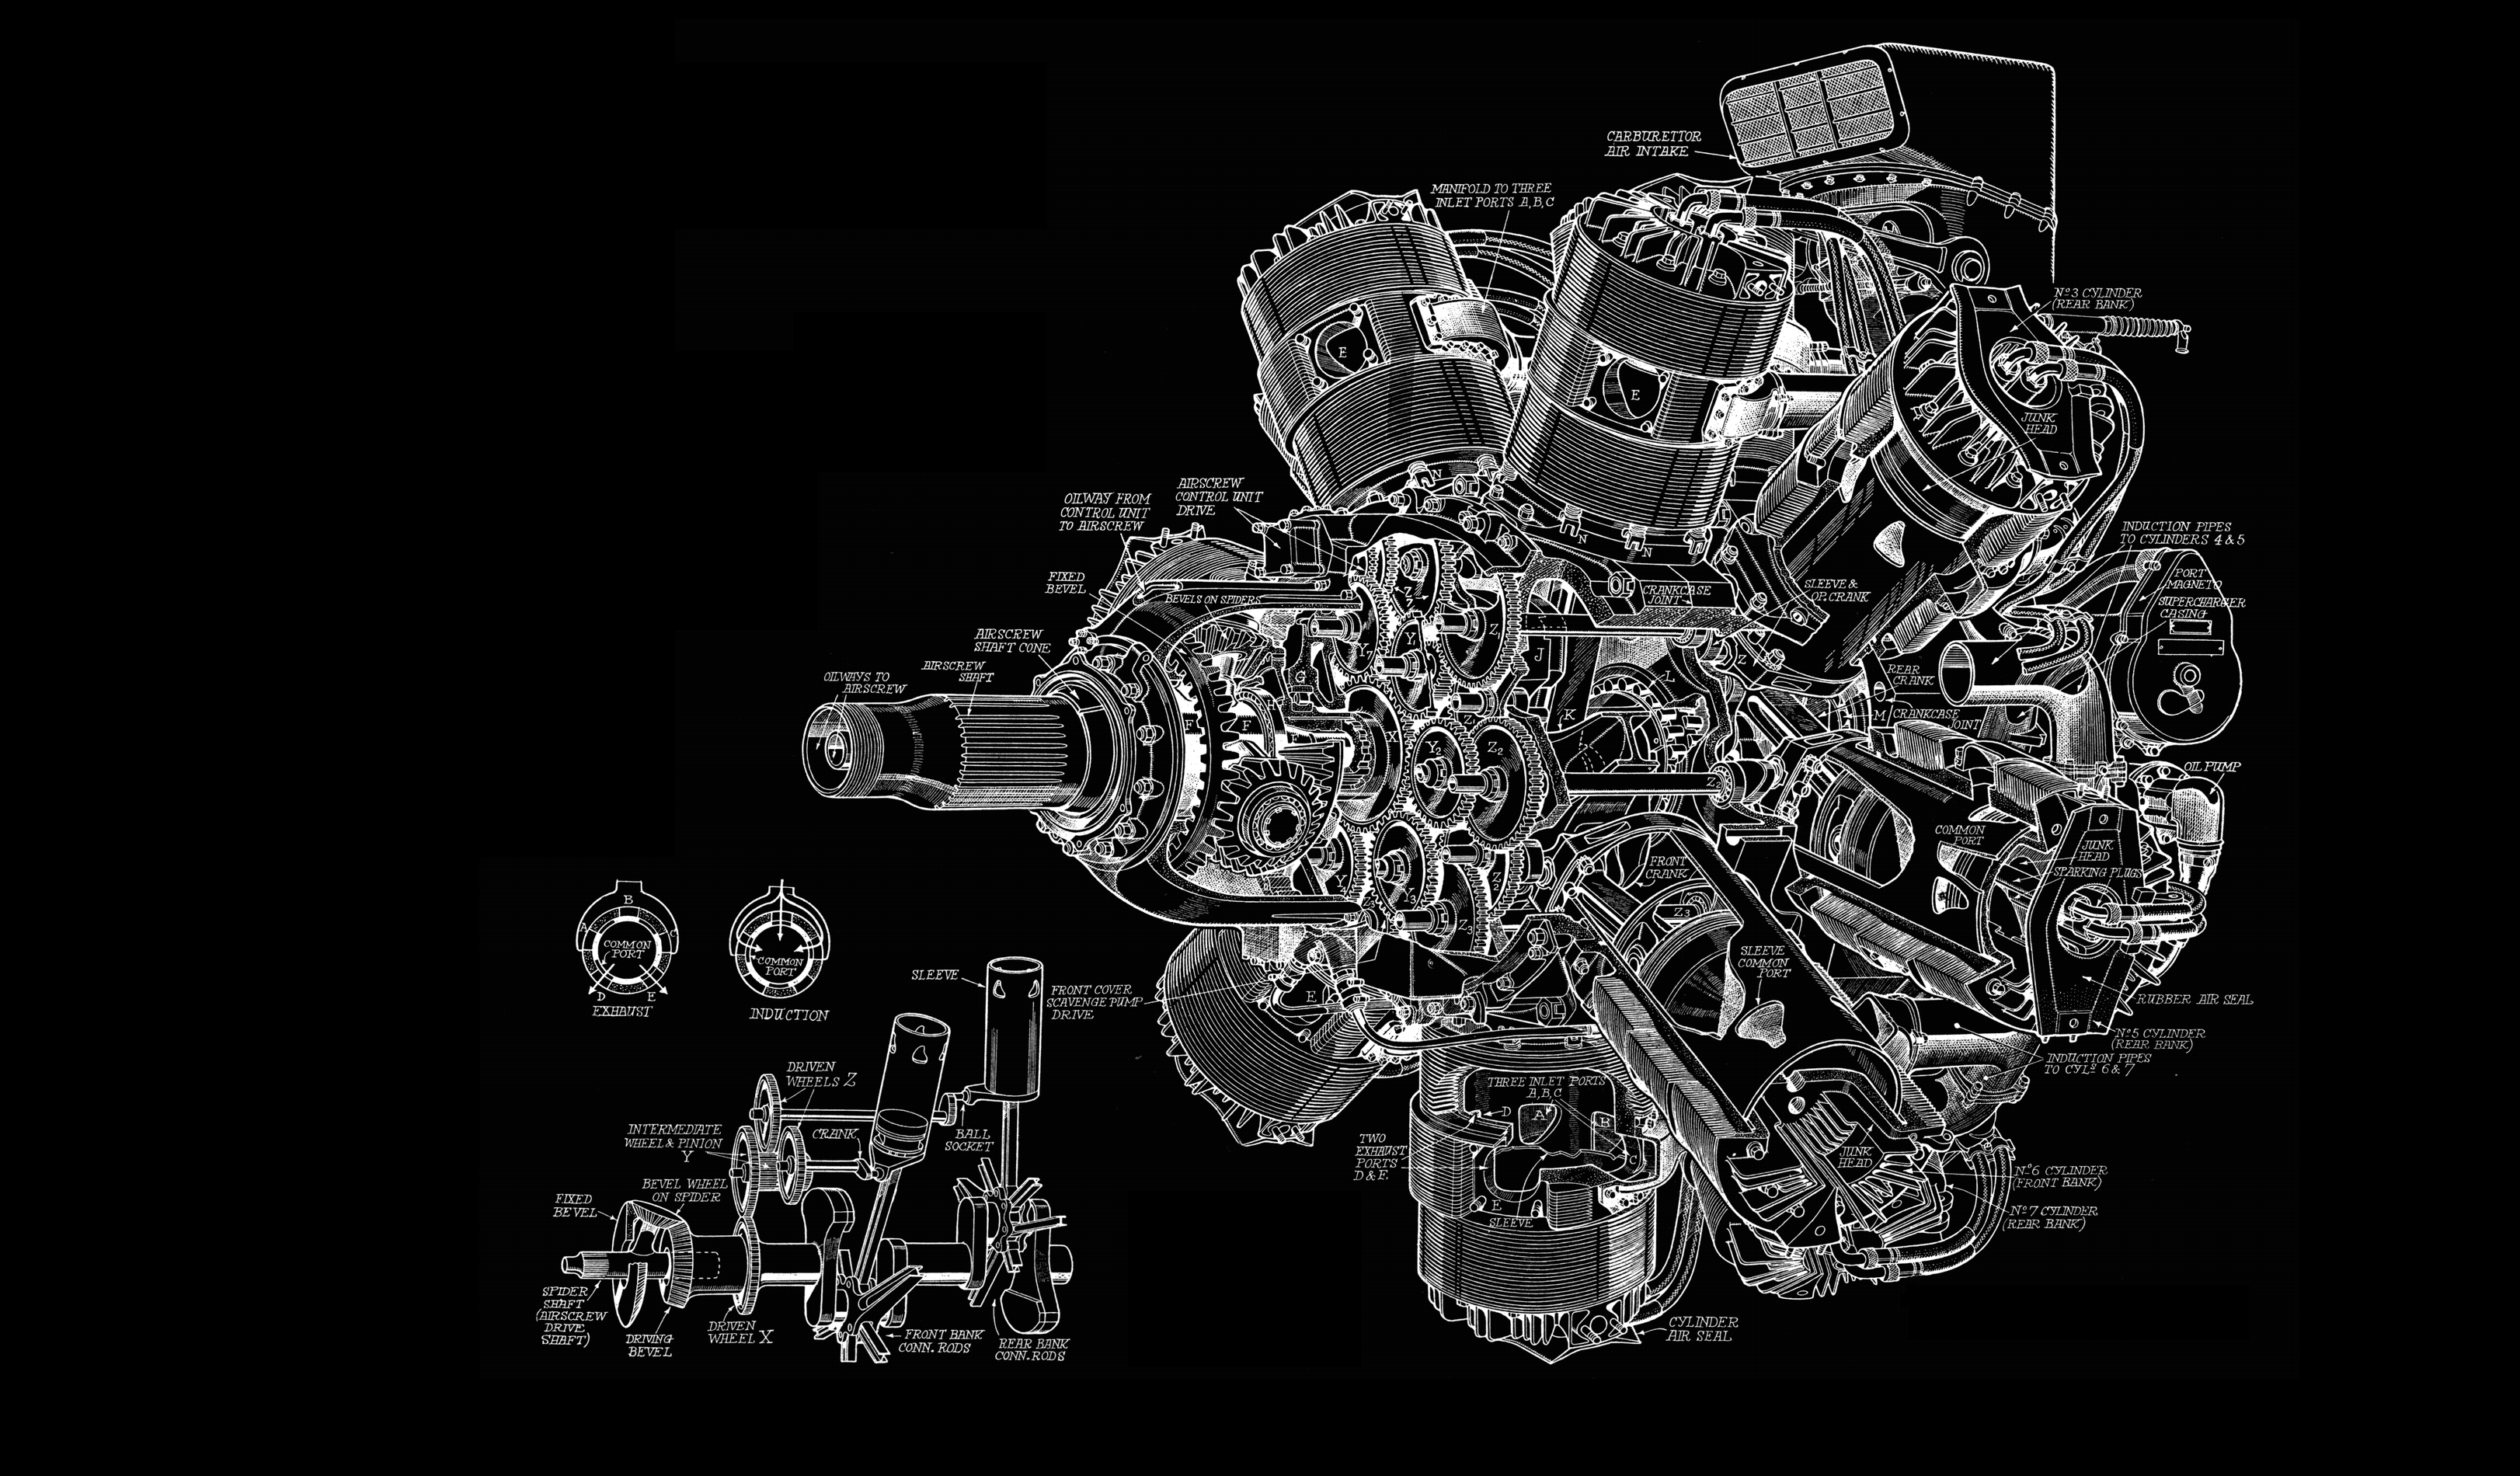 Engine diagram bw black aircraft airplane wallpaper wallpapers airplane wallpaper blueprint - Jet engine wallpaper ...